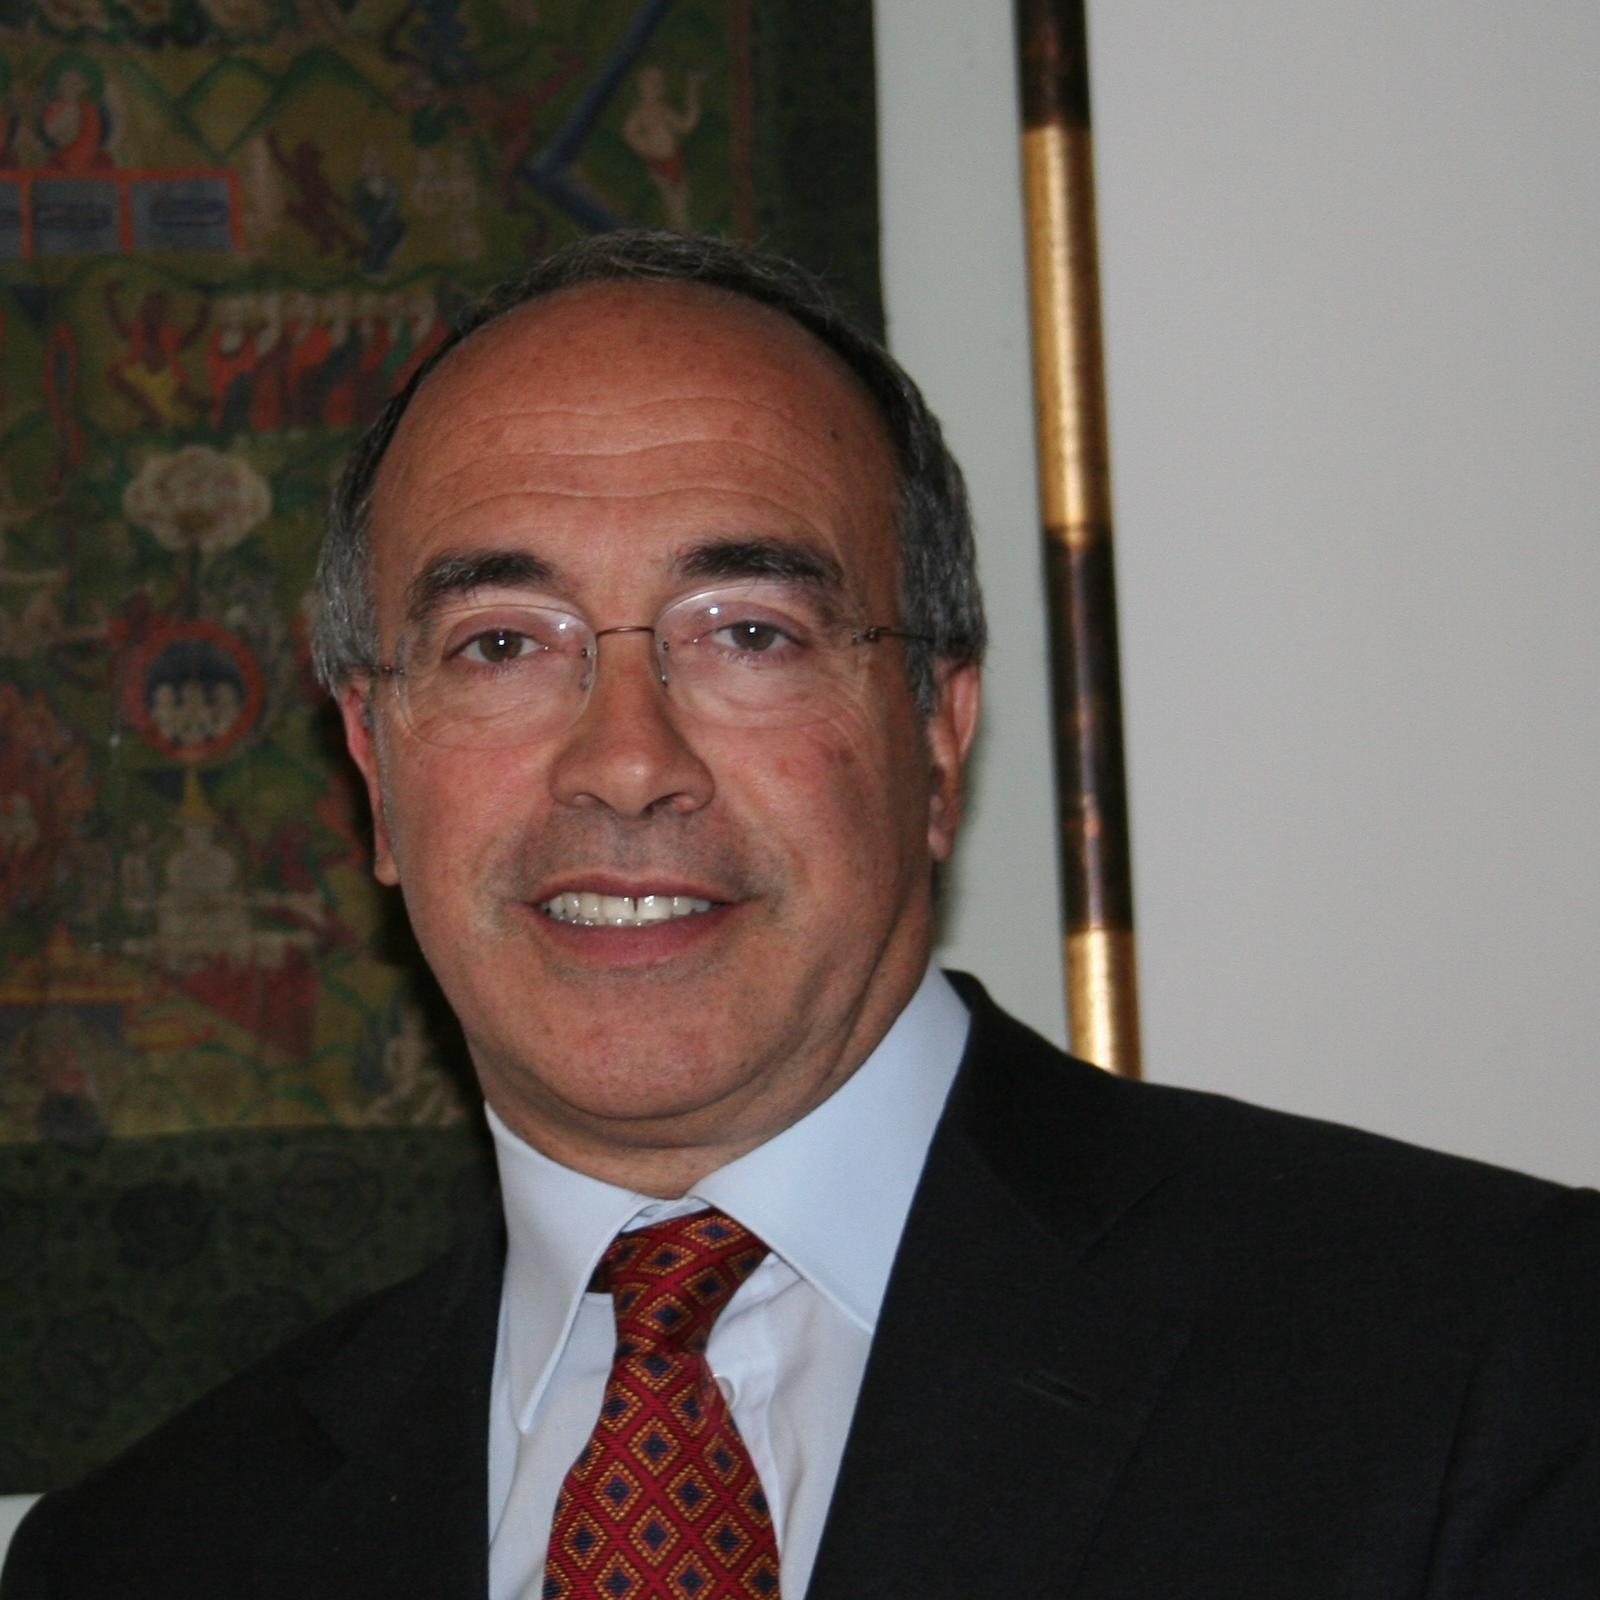 Paolo Angelucci